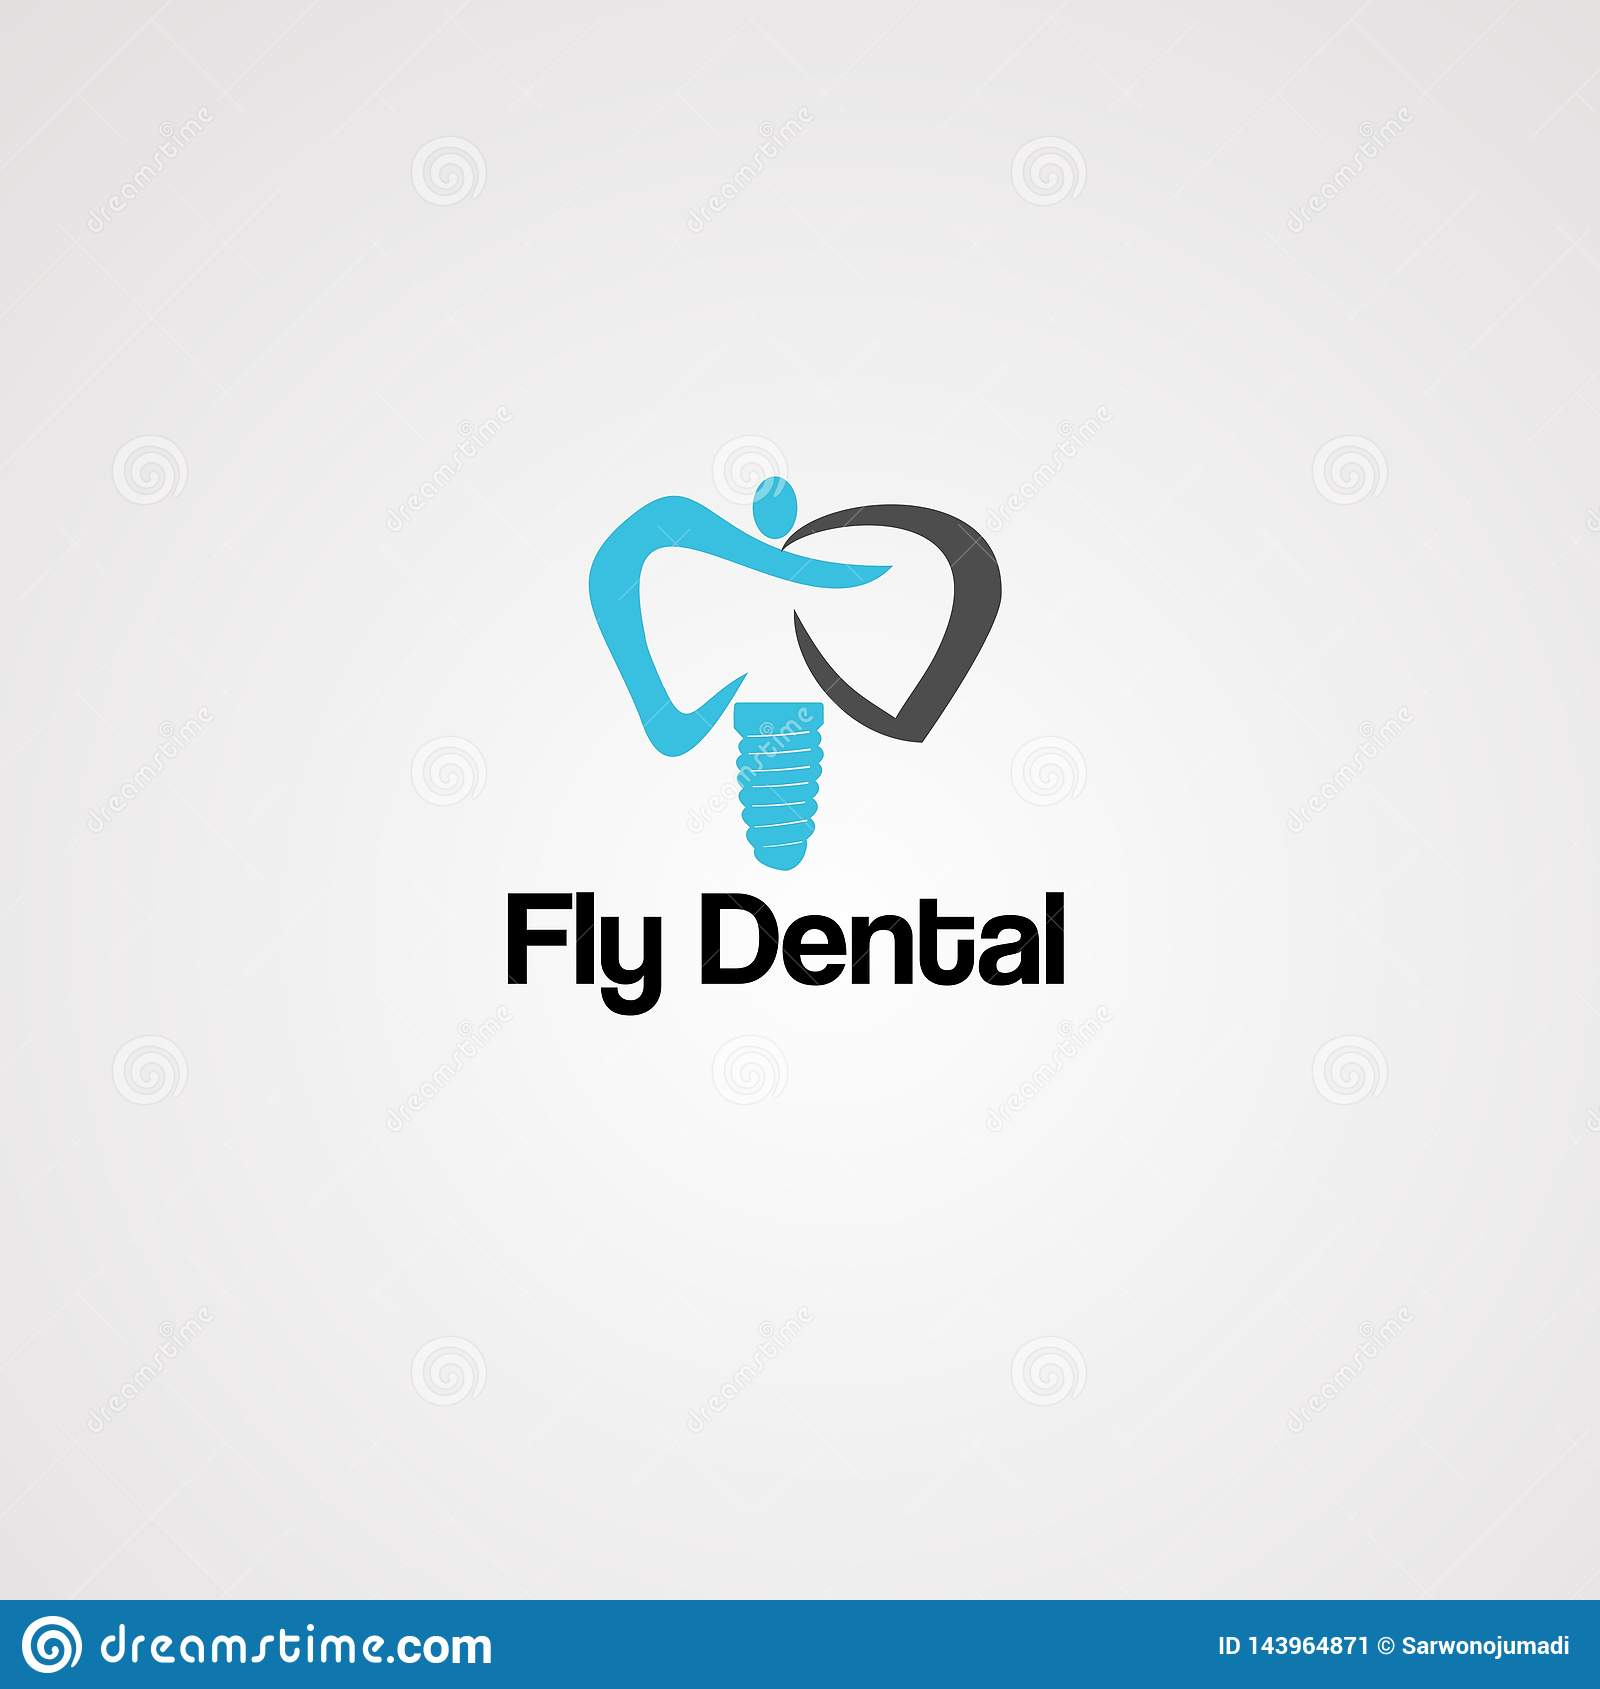 Fly dental logo vector, icon, element, and template